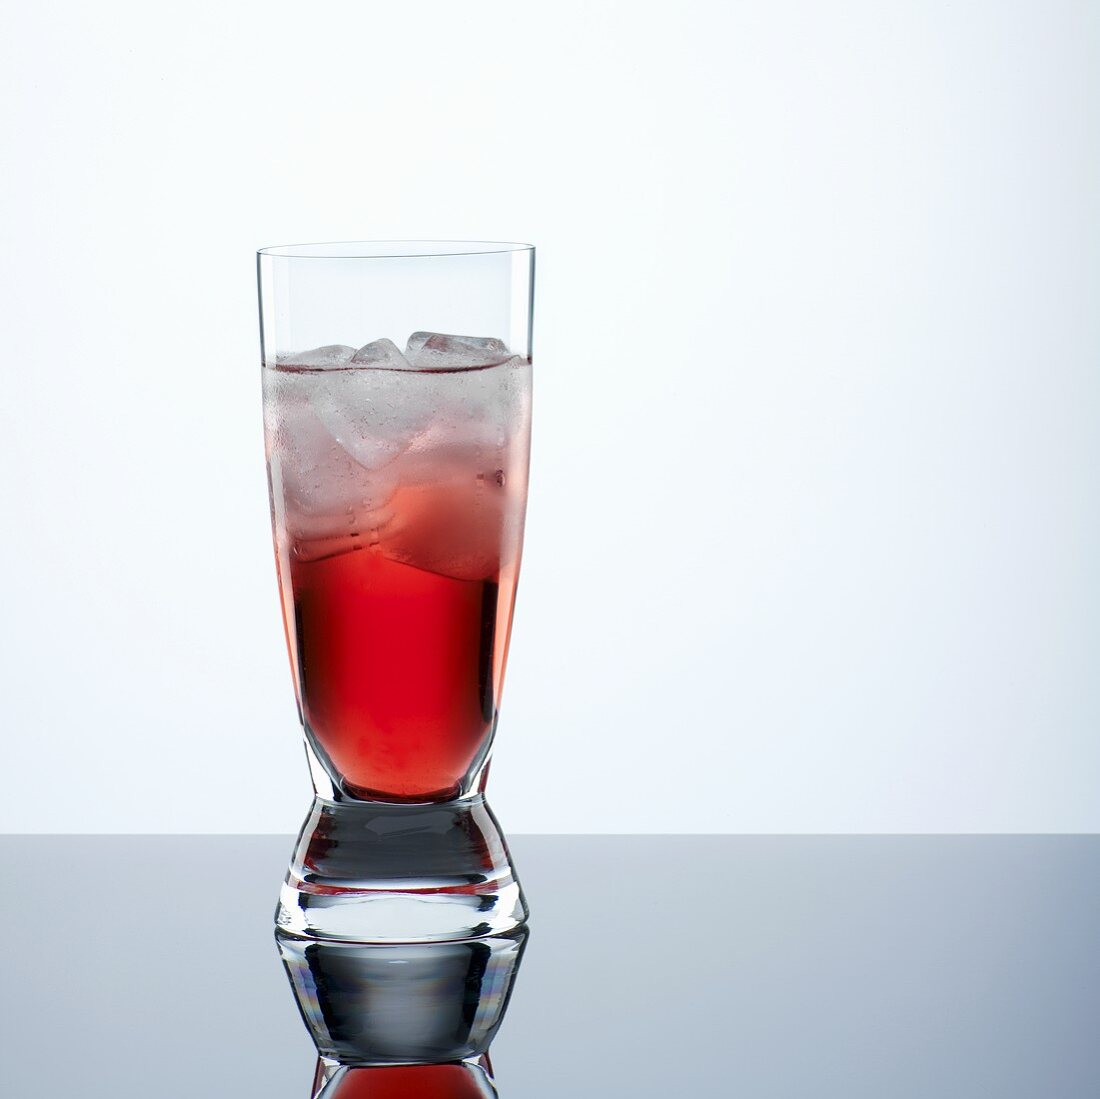 Campari with ice cubes in glass